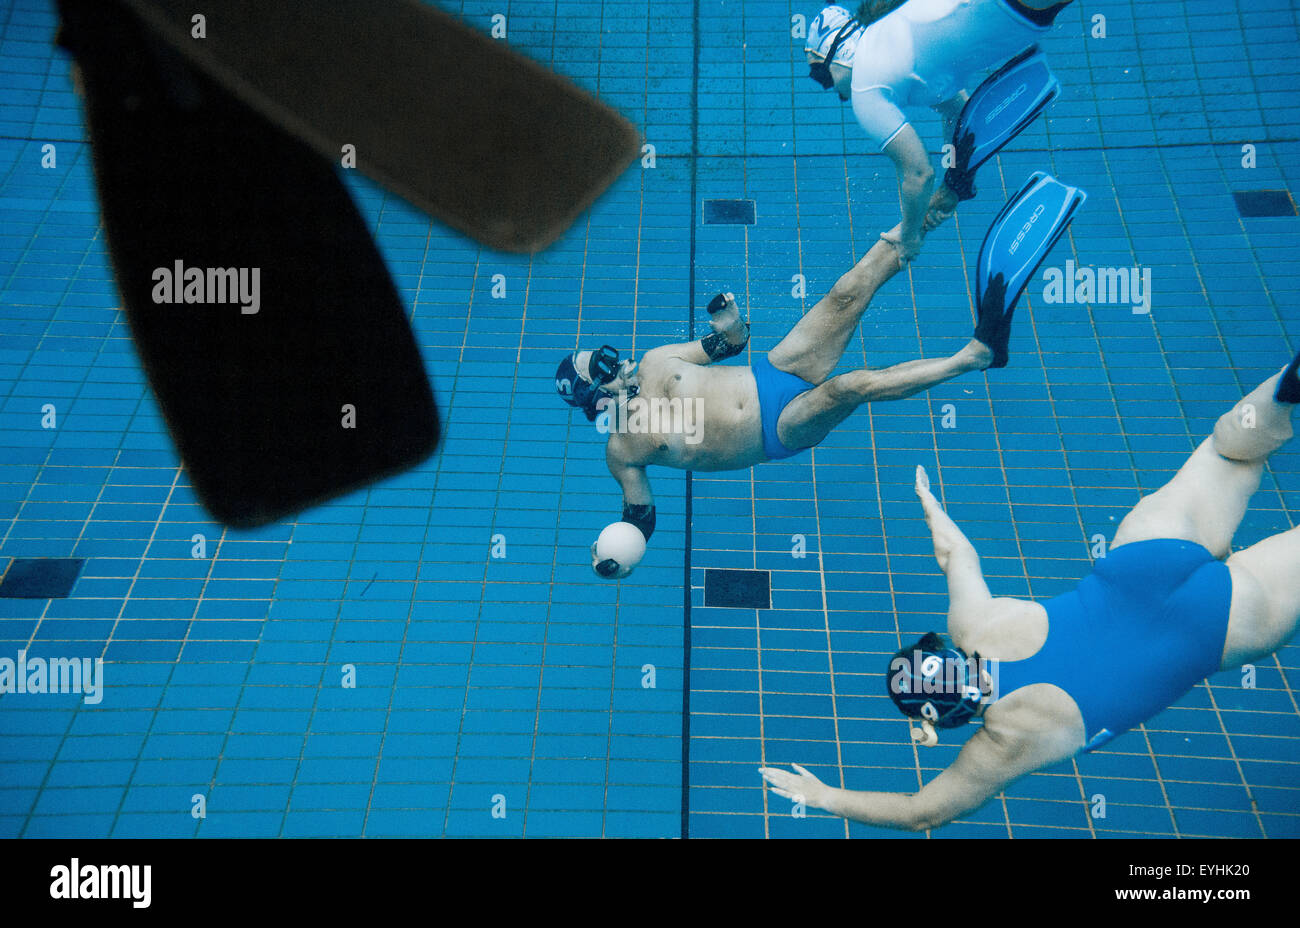 29th july 2015 swimmers play underwater rugby in the public swimming pool at the olympic stadium in berlin germany 29 july 2015